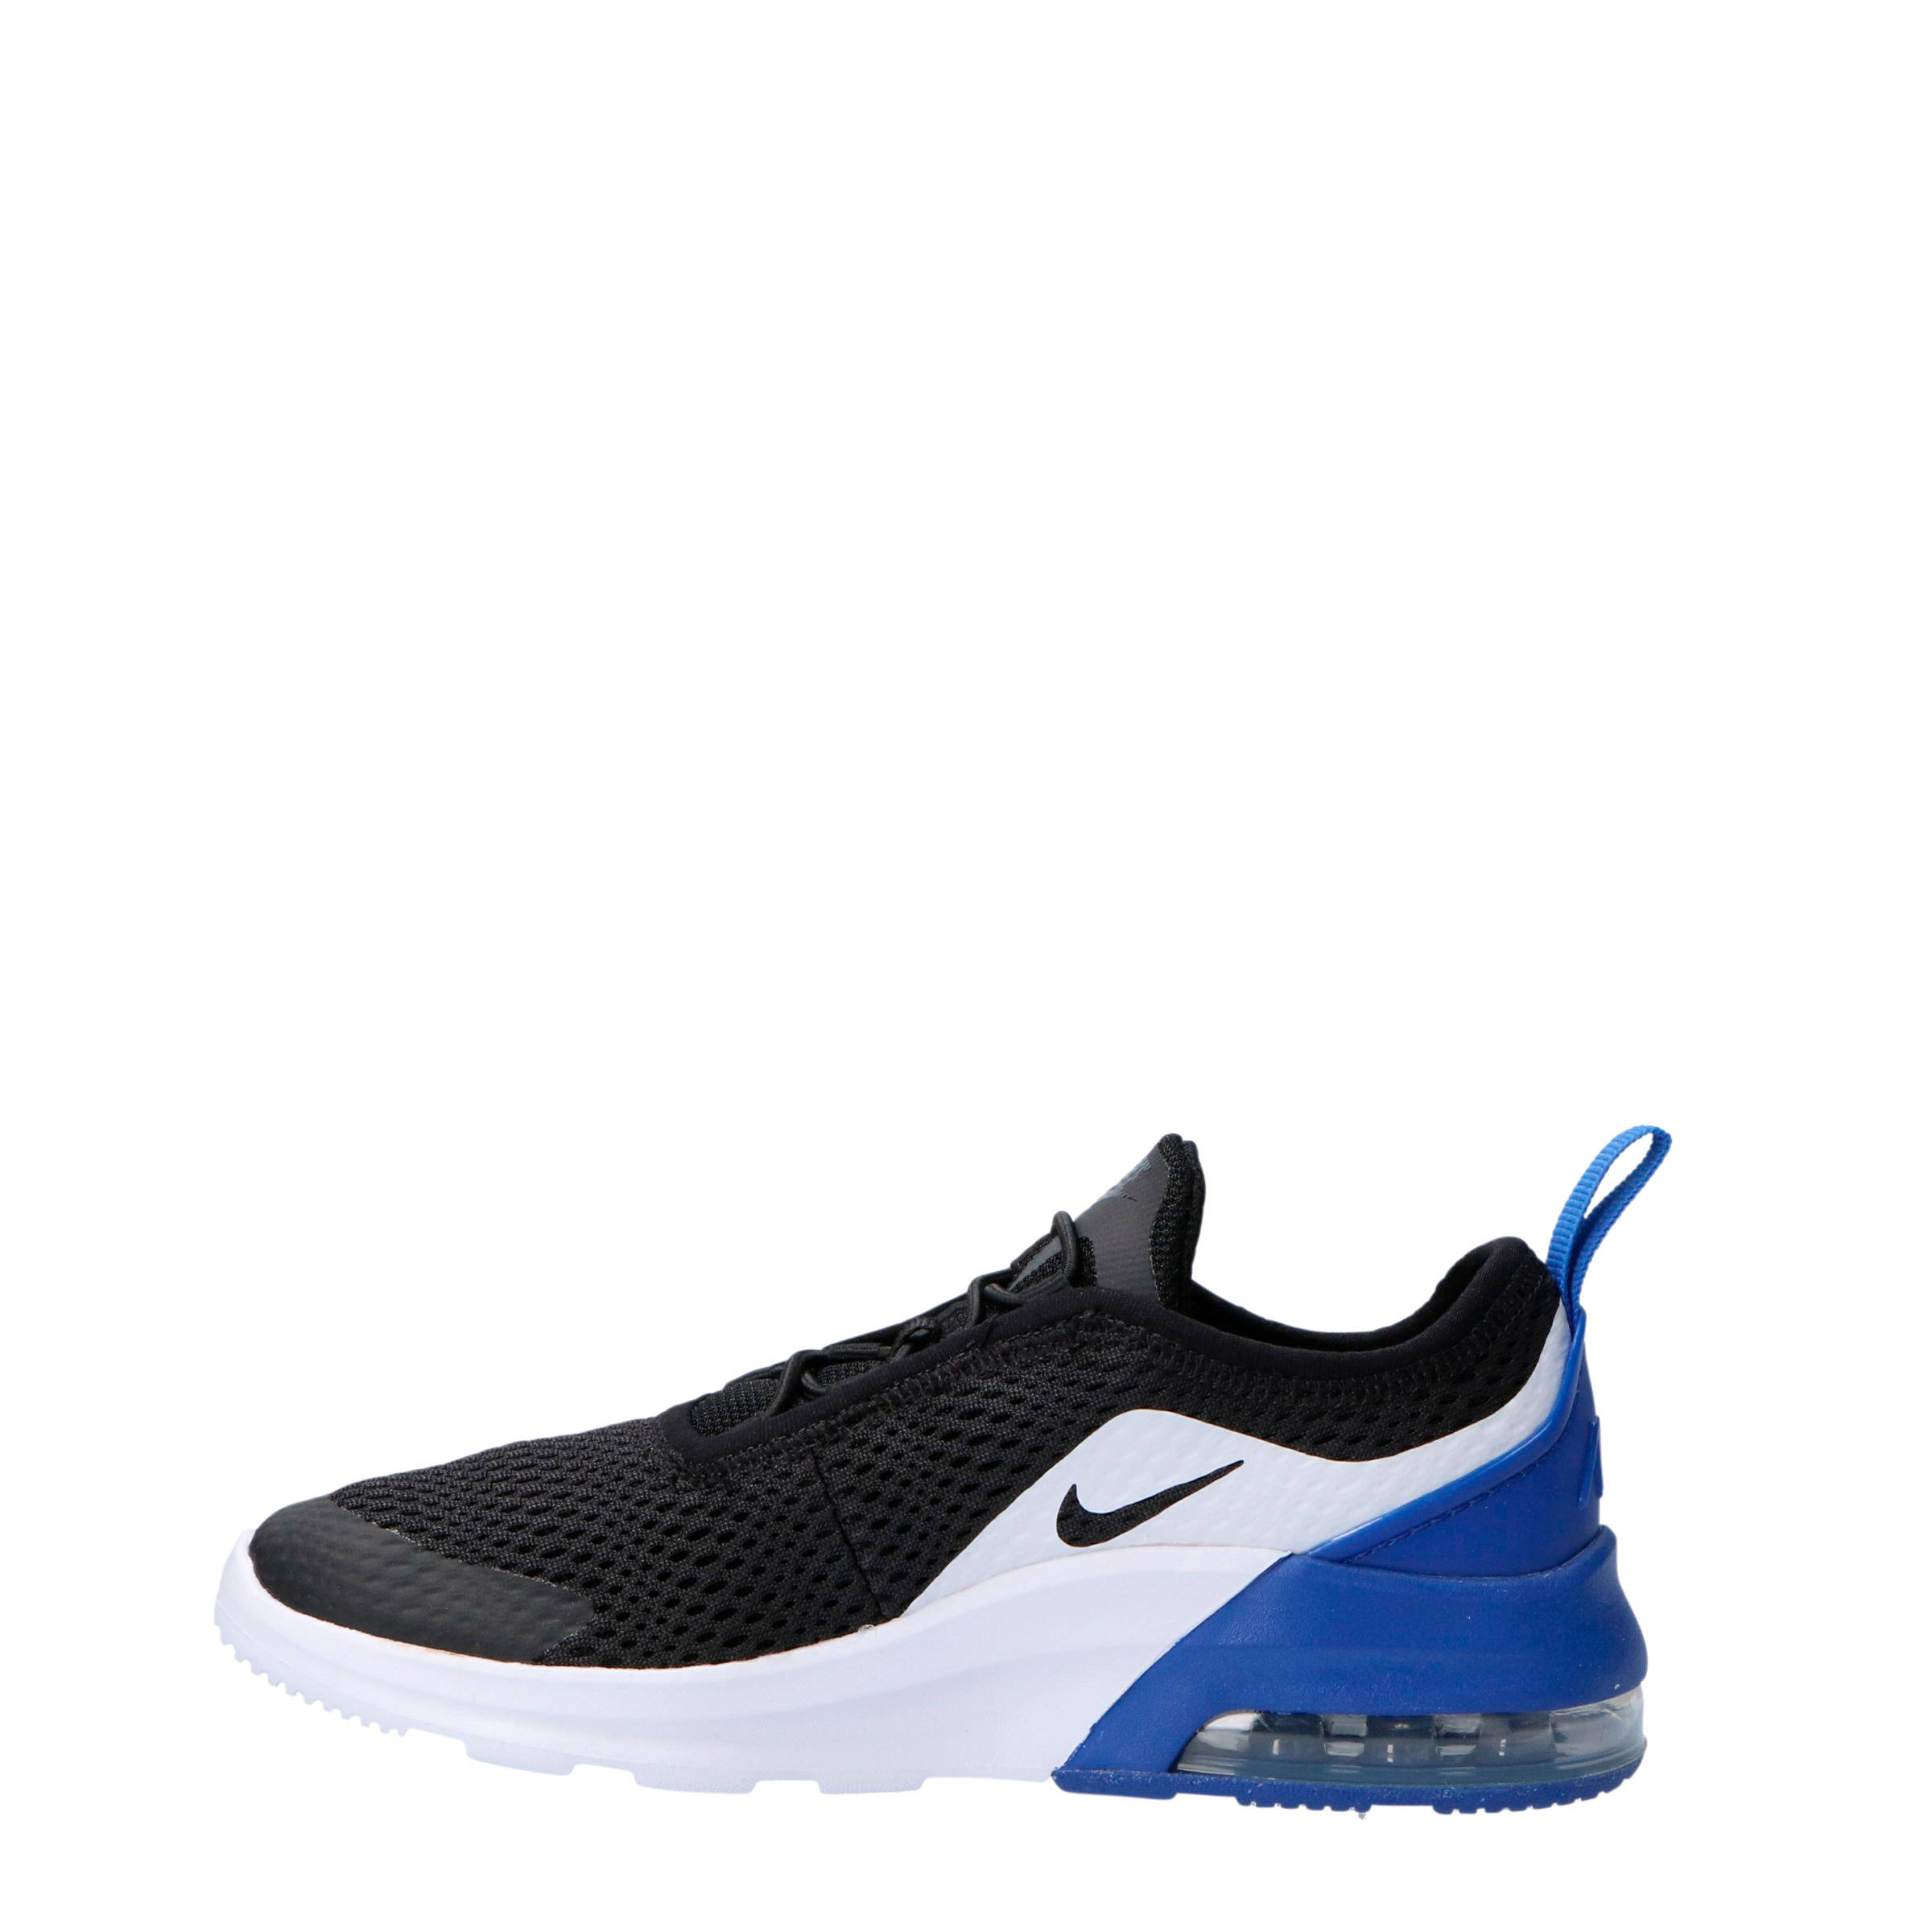 the best attitude dfe44 eba1c Nike Air Max Motion 2 sneakers zwart wit blauw   wehkamp